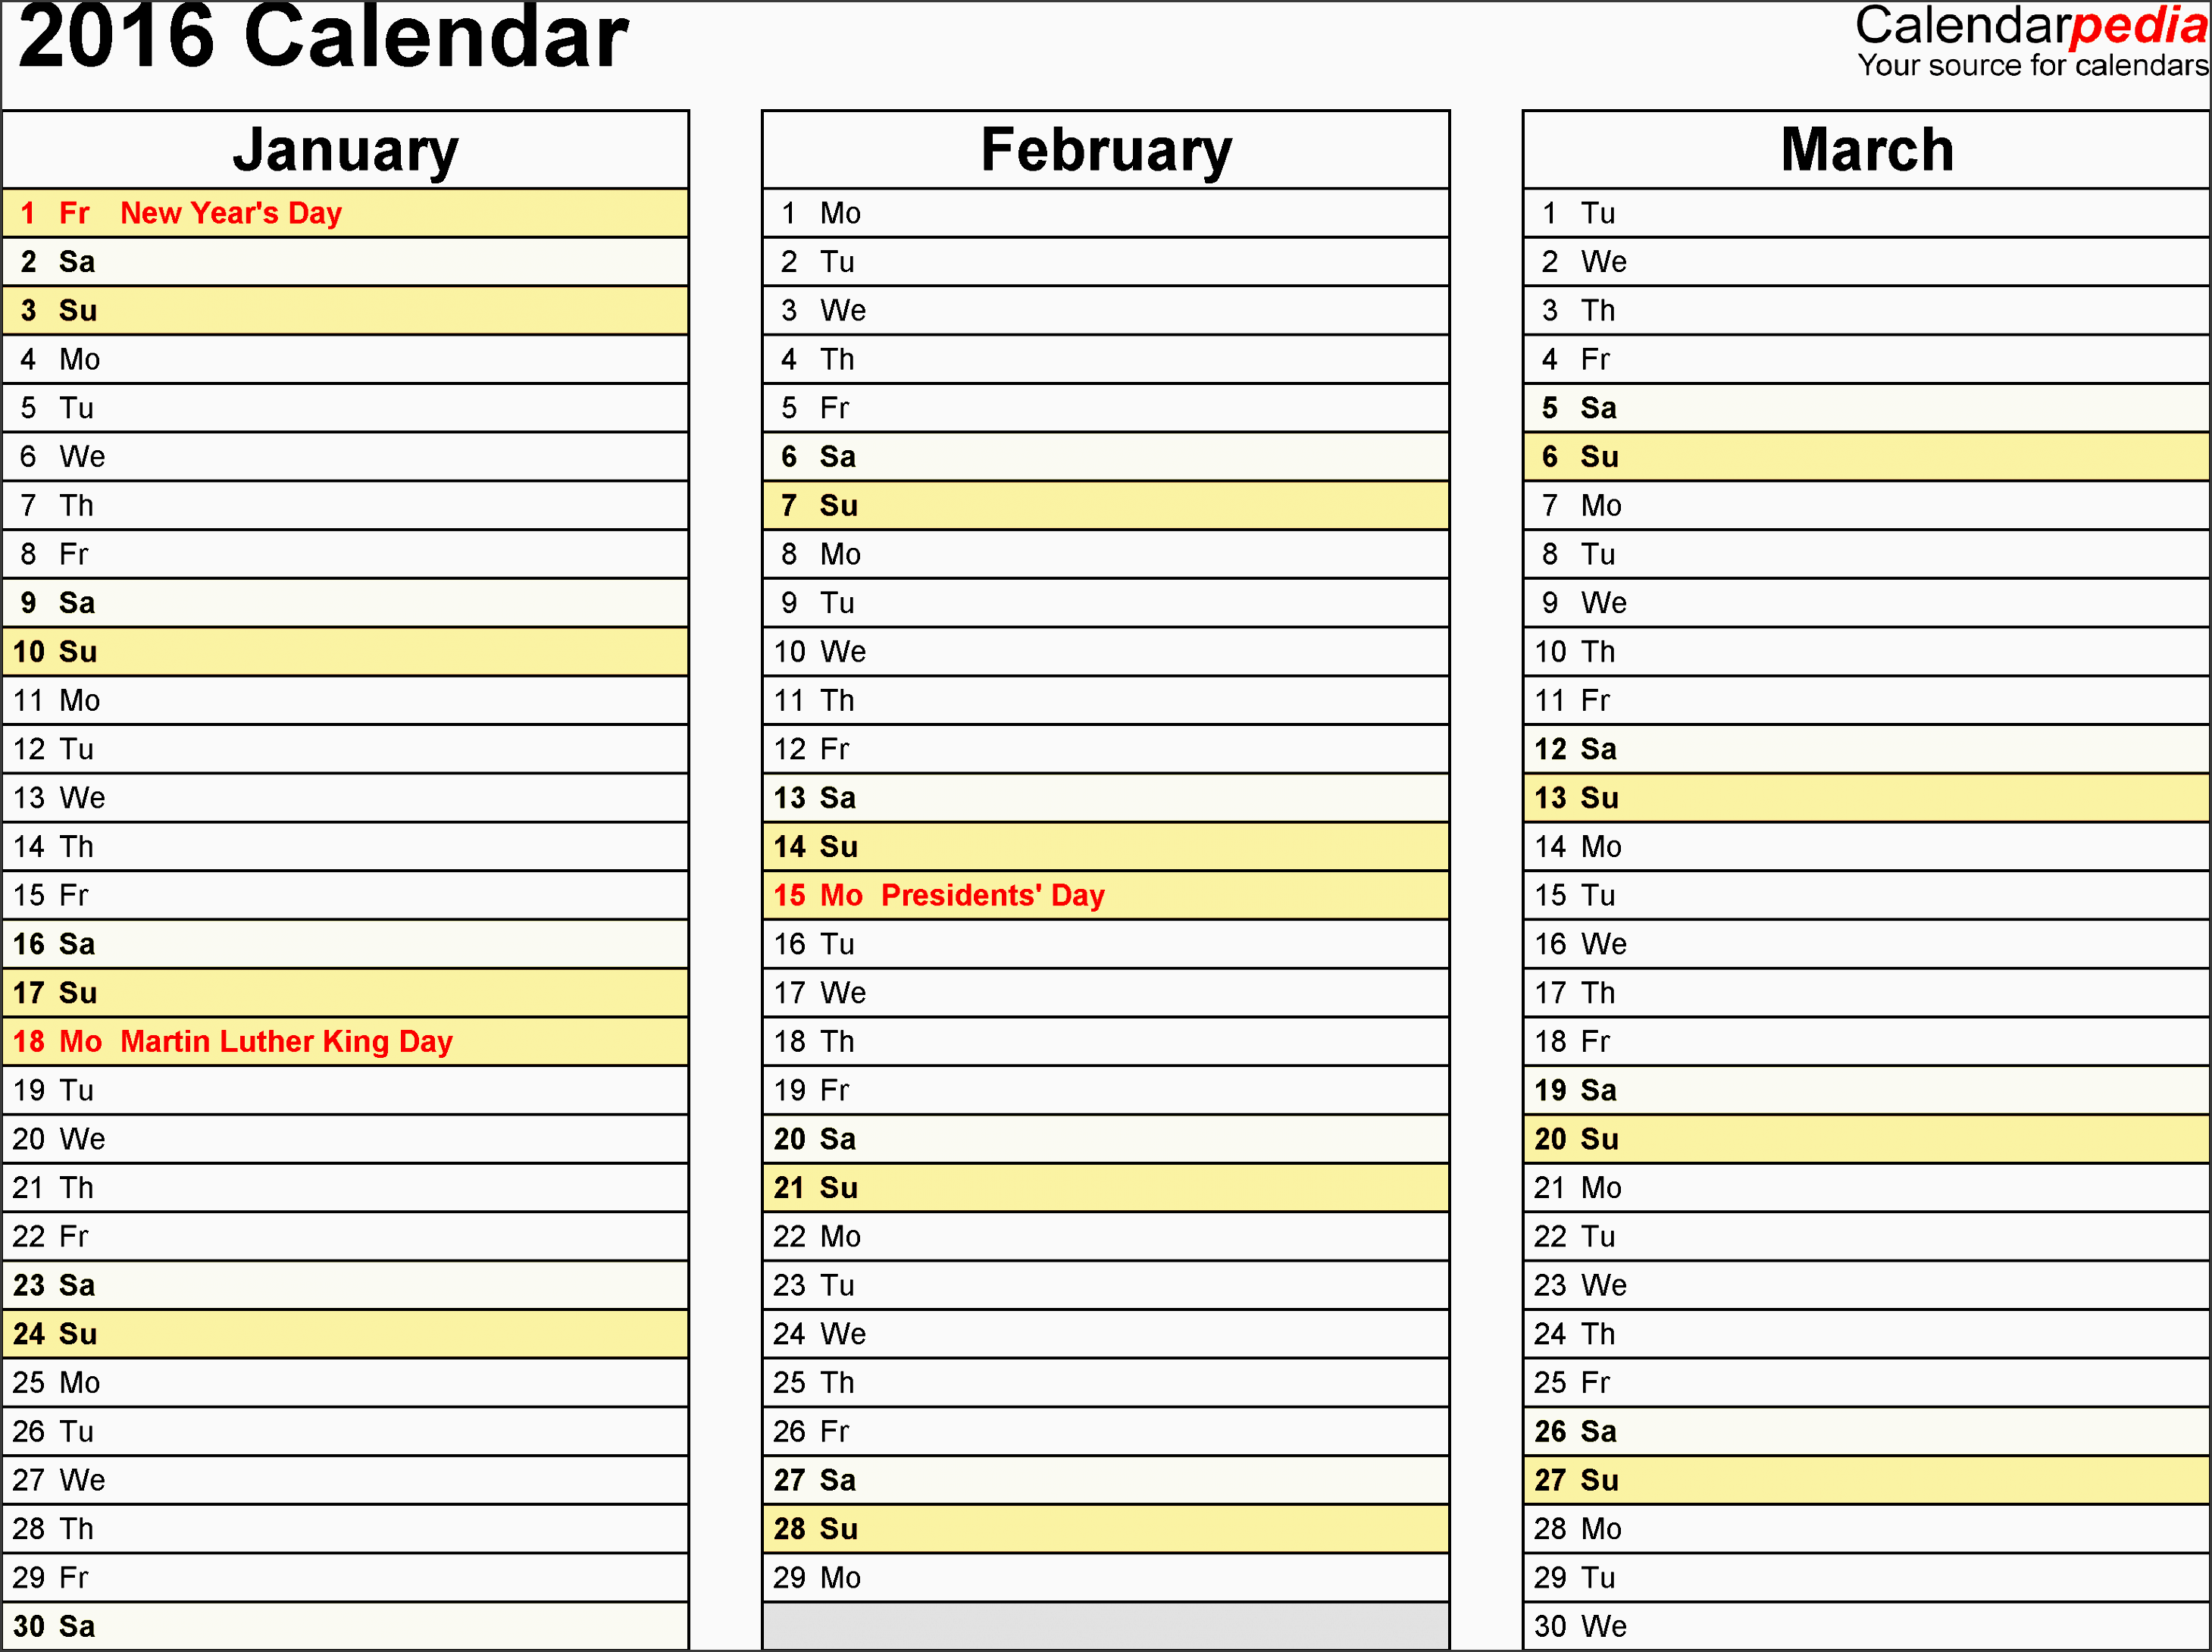 template 6 2016 calendar for excel months horizontally 4 pages landscape orientation